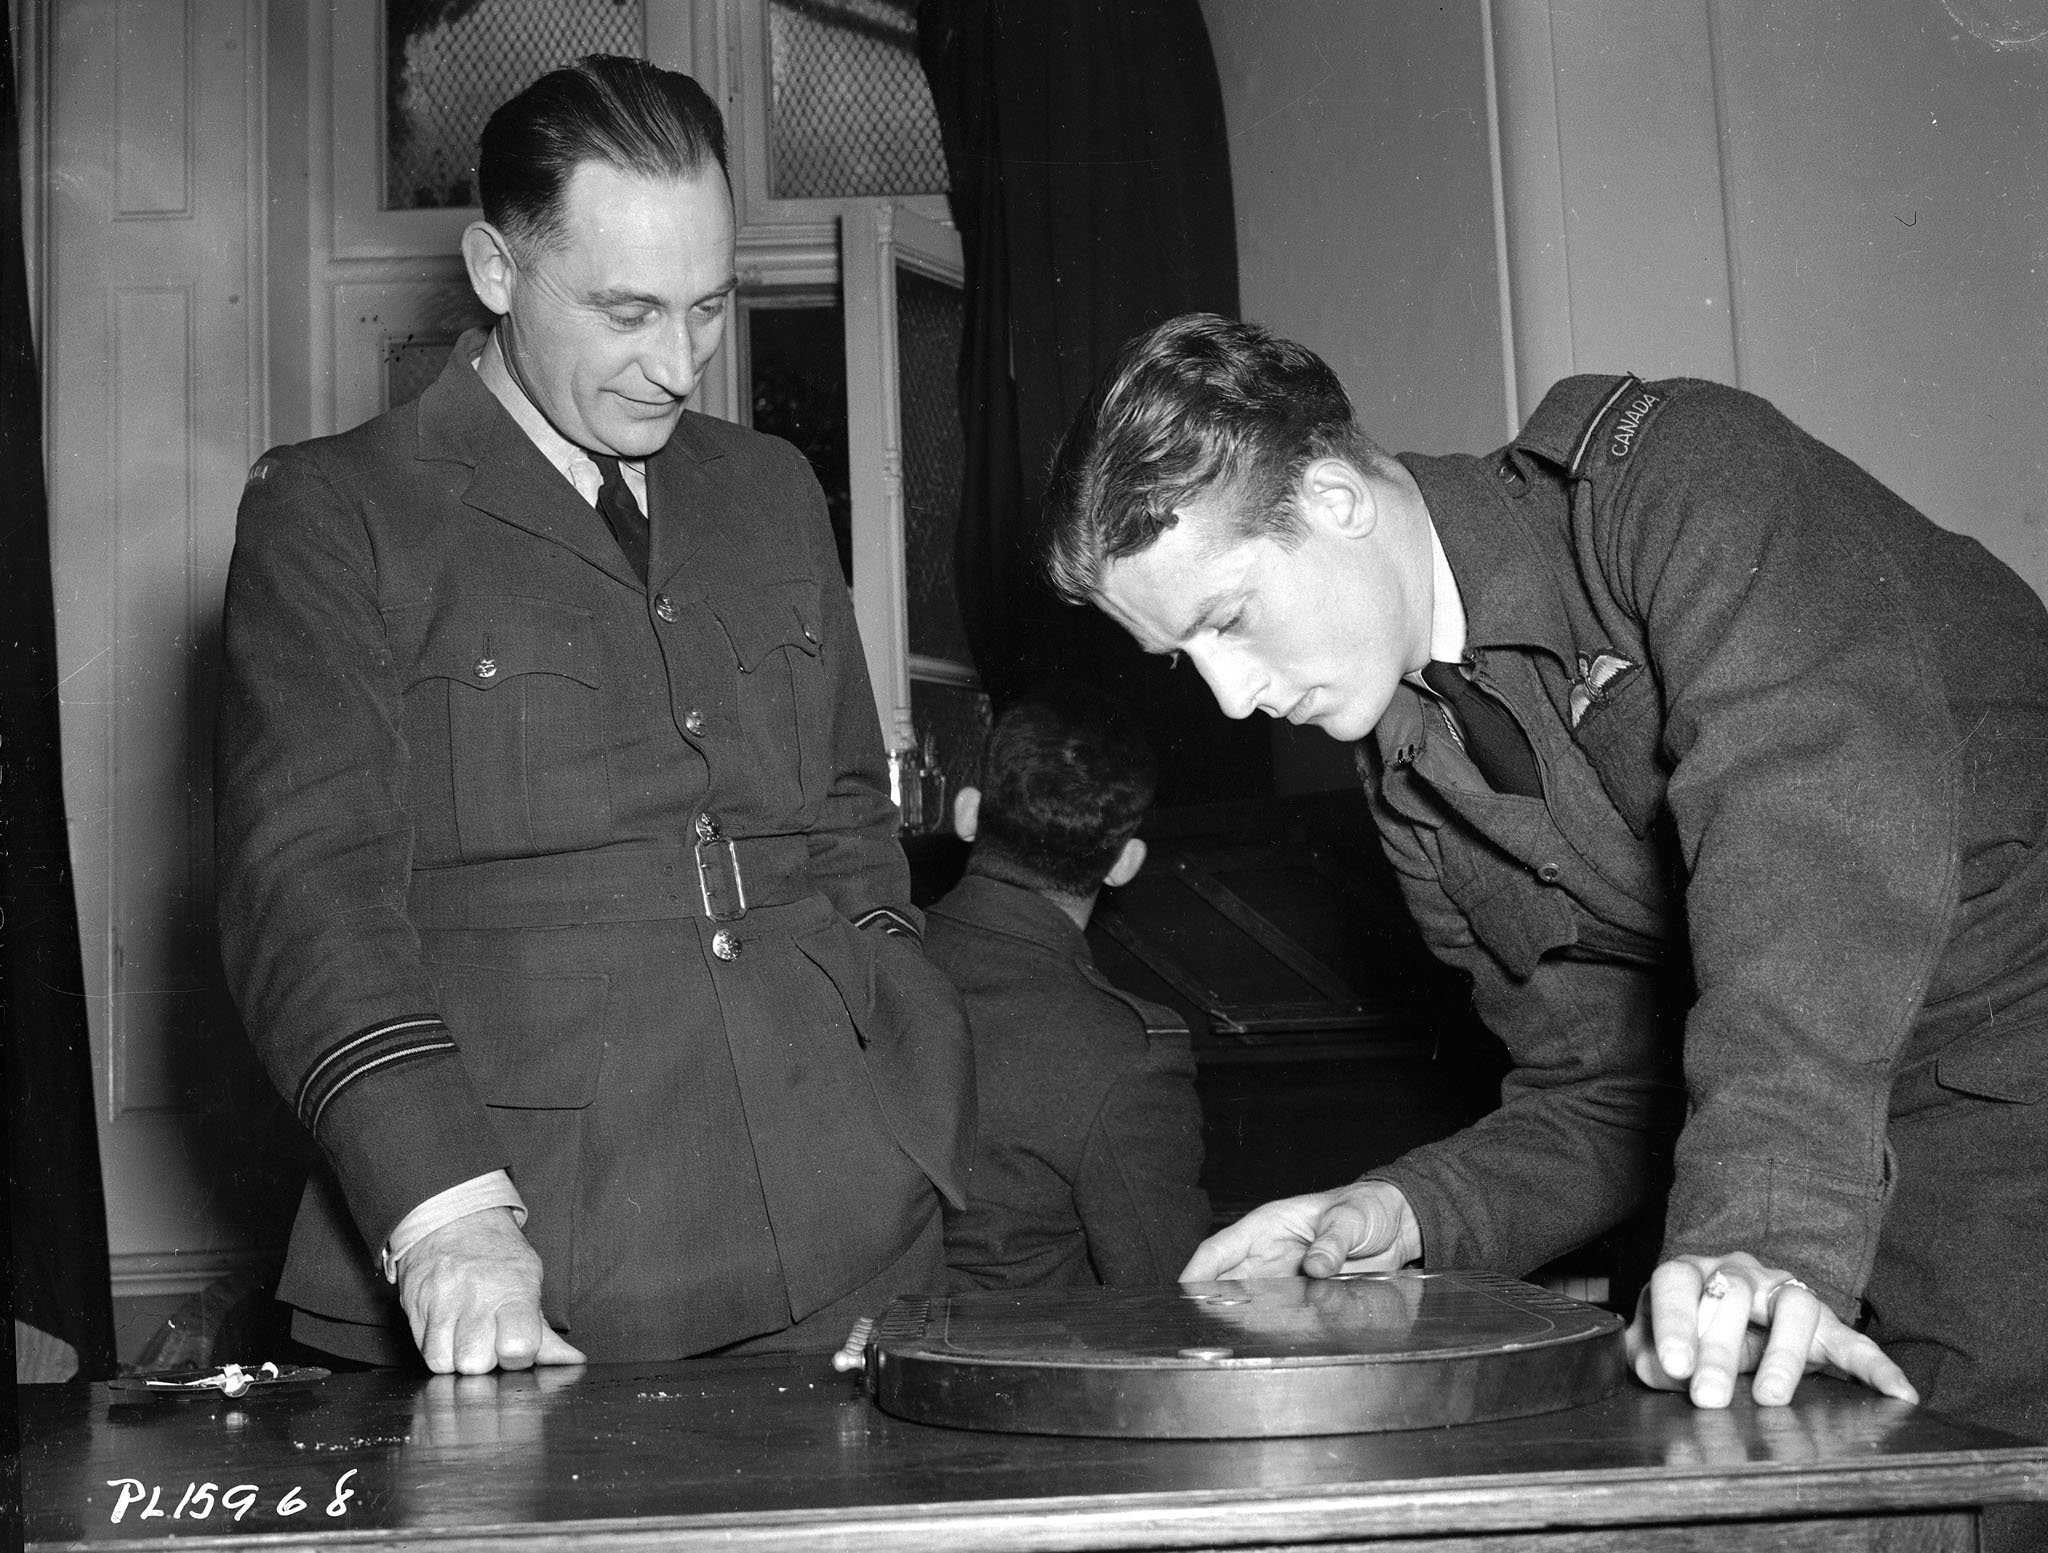 Two men wearing military uniforms look at a flat round object on a table.